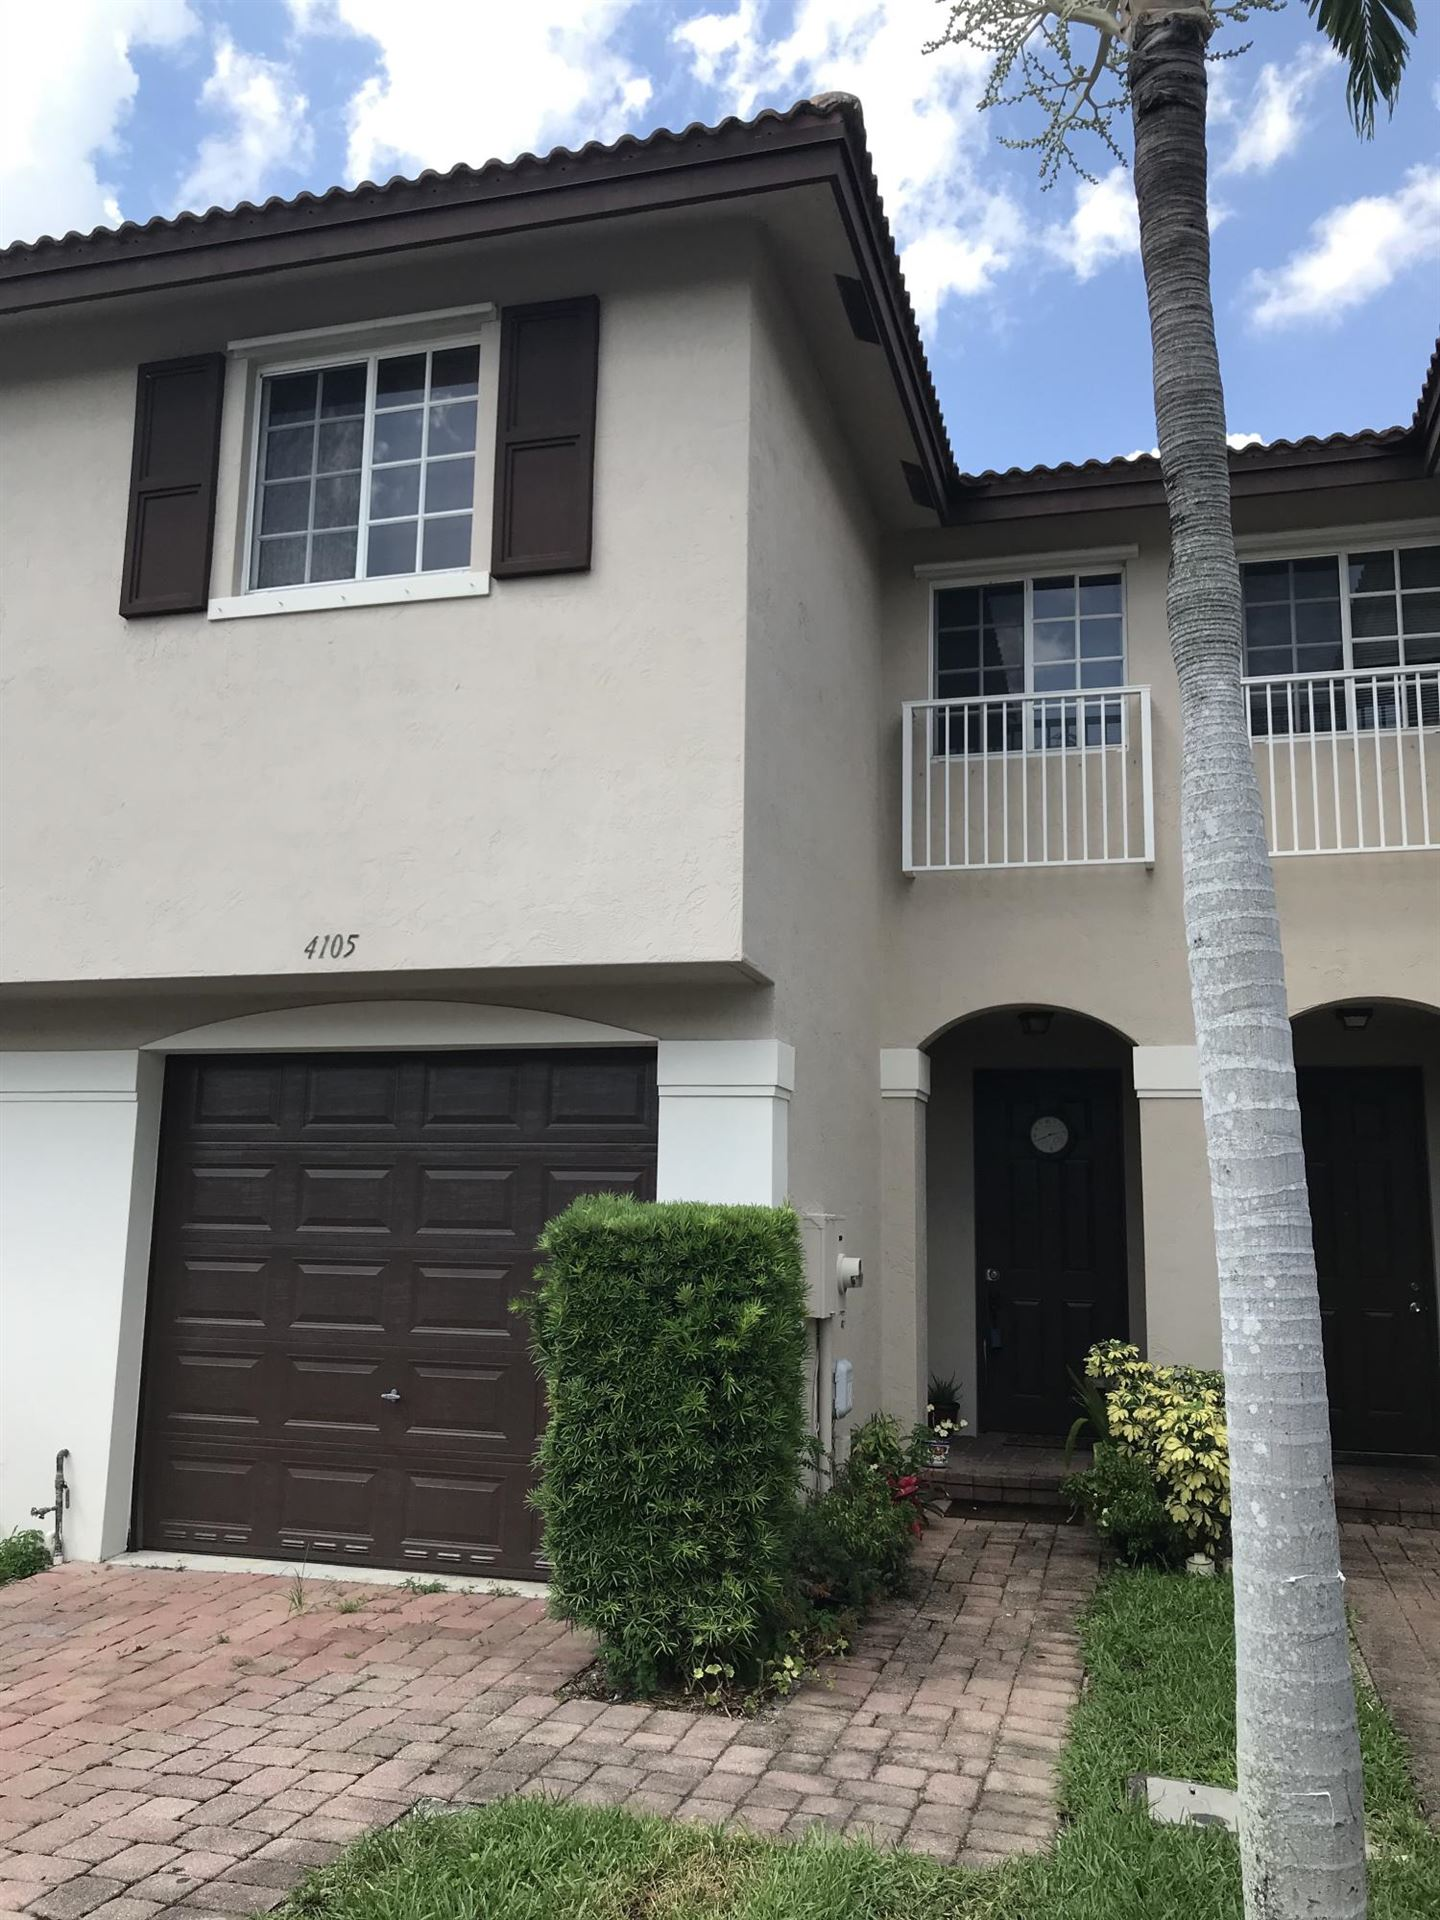 4105 Napoli Lake Drive, West Palm Beach, FL 33410 - #: RX-10642053